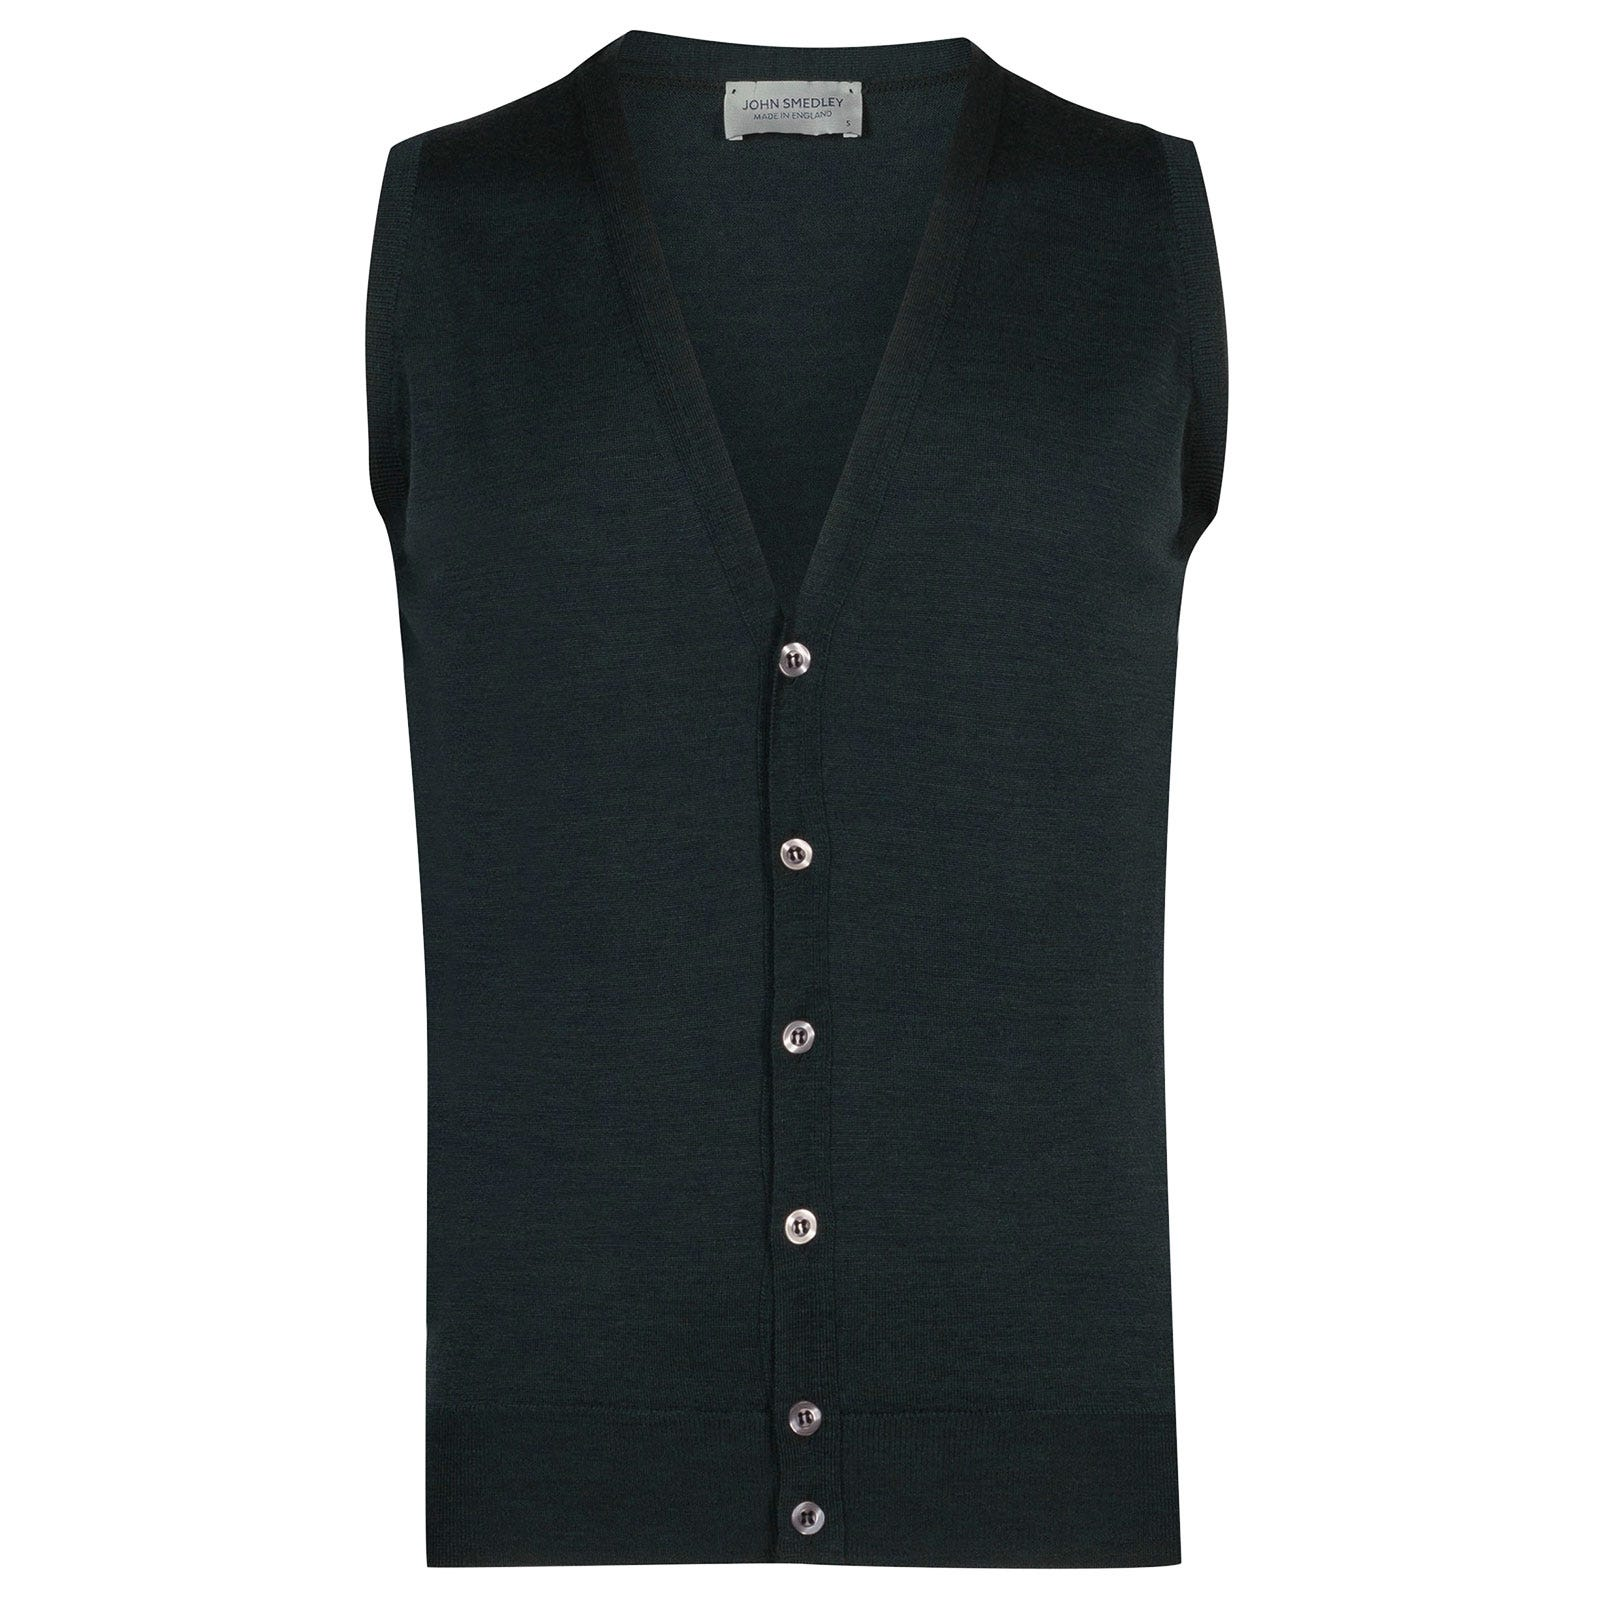 John Smedley stavely Merino Wool Waistcoat in Racing Green-XL